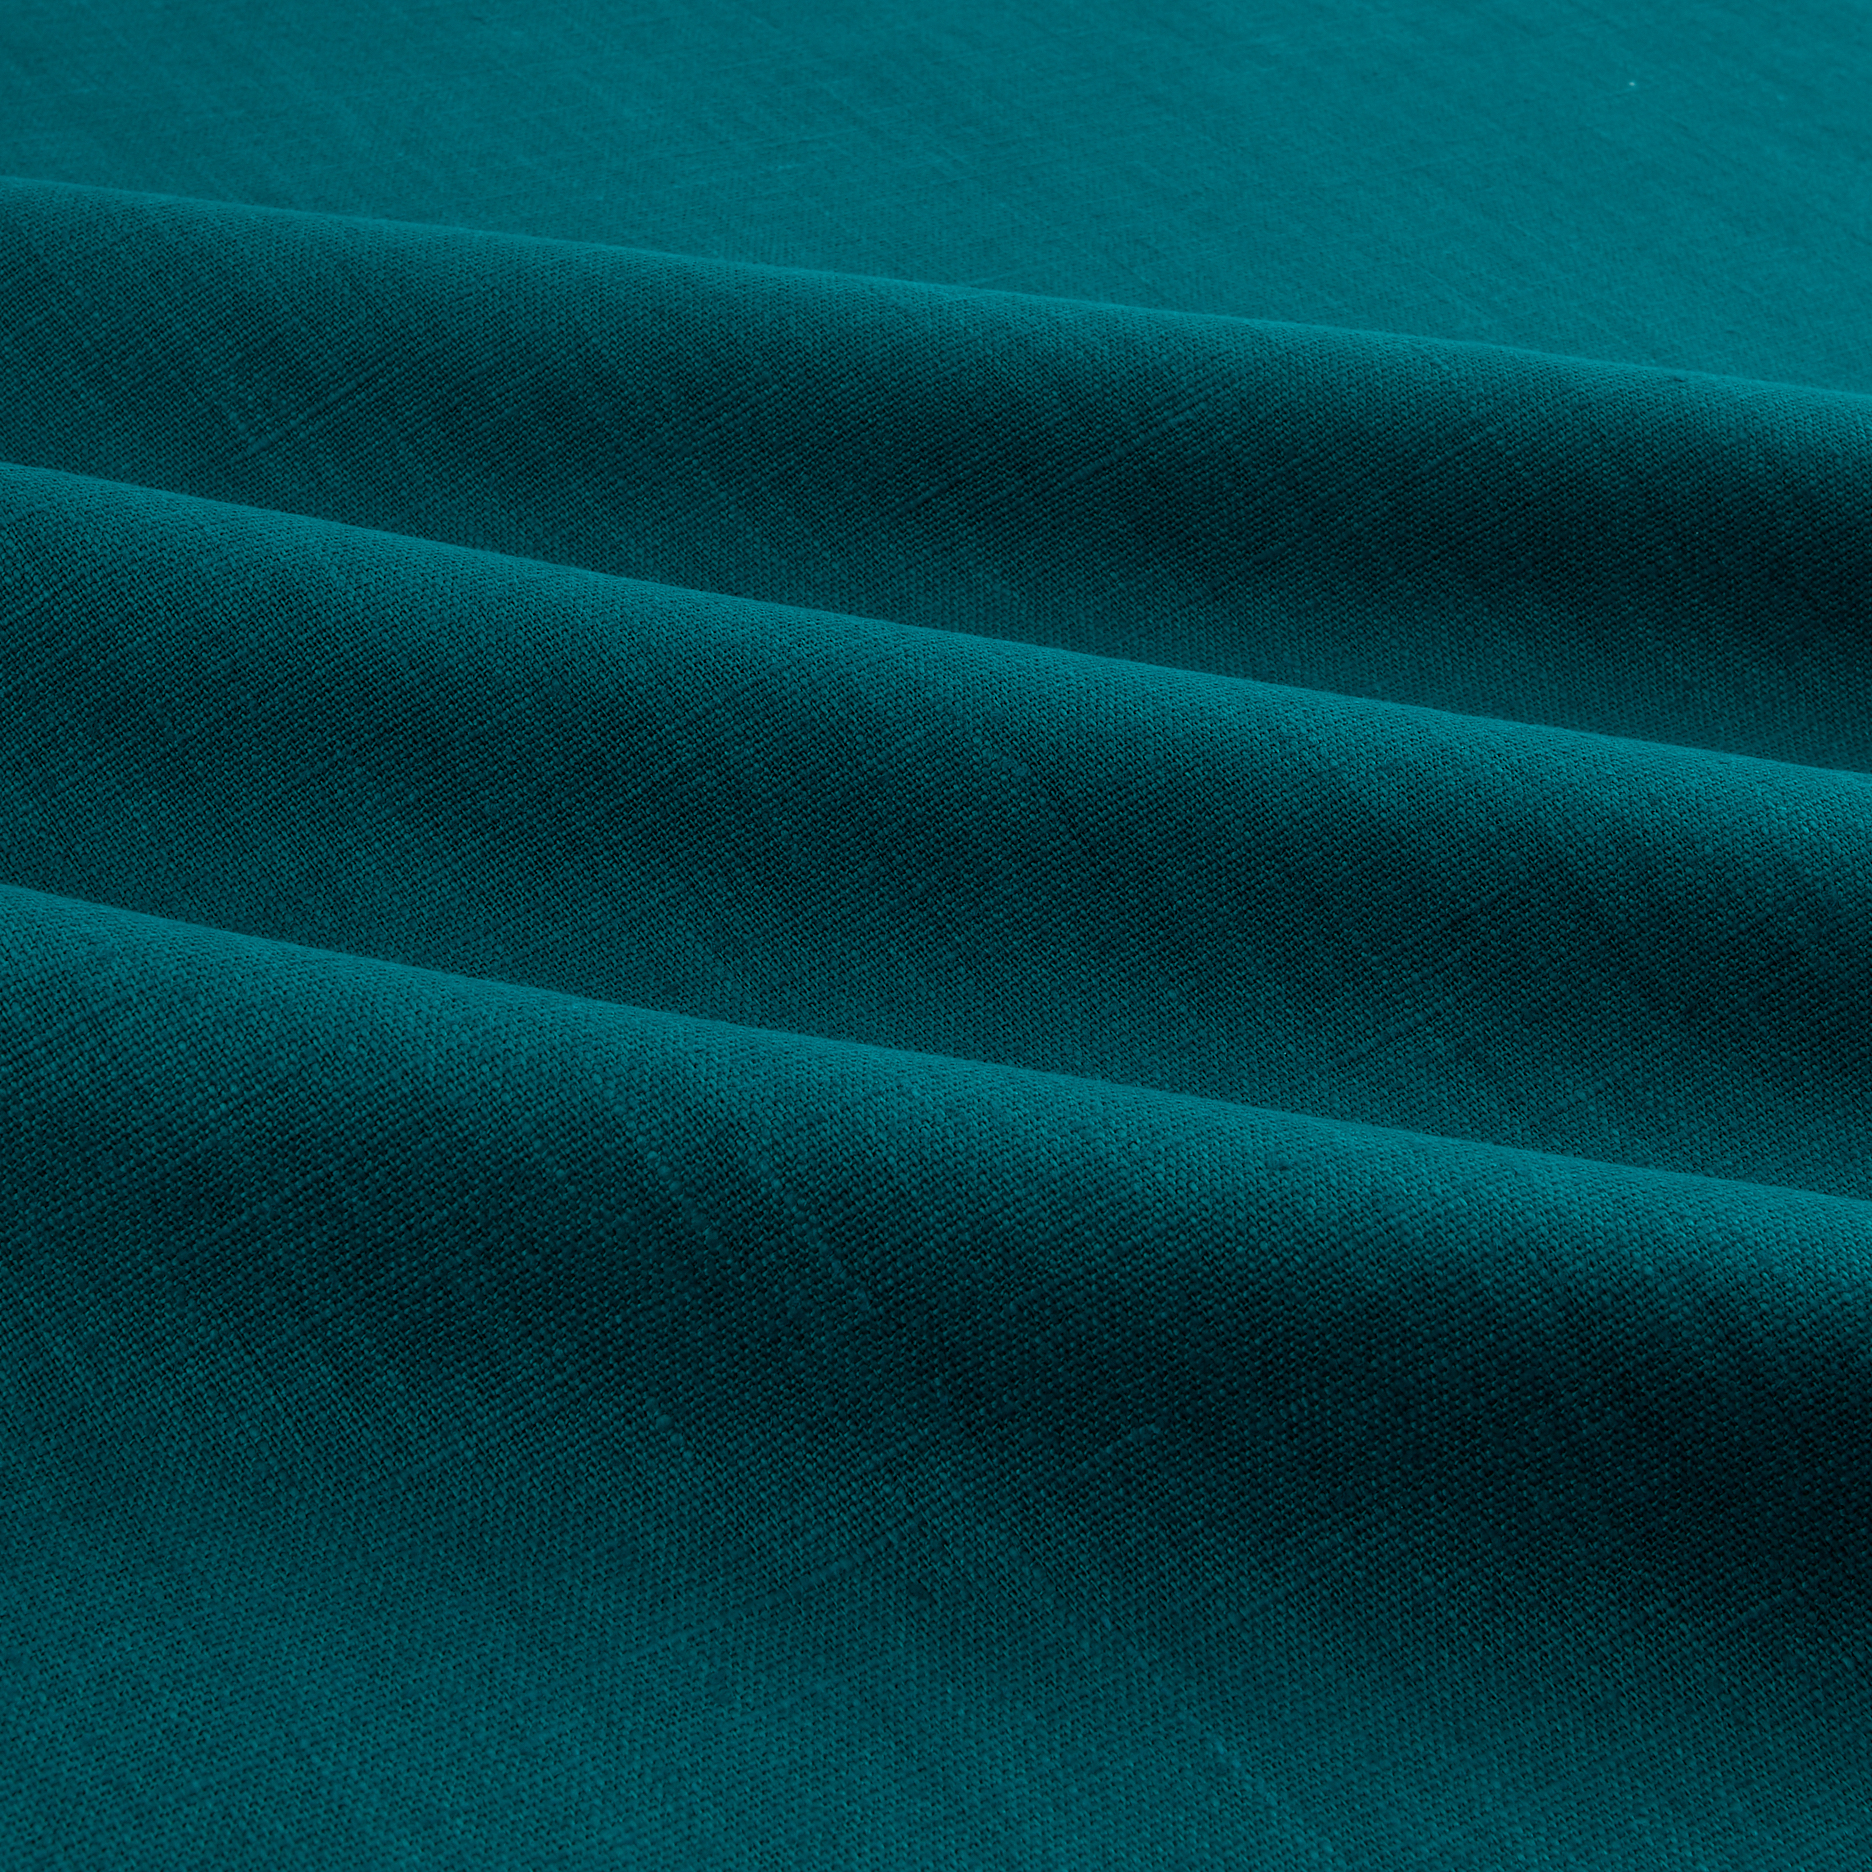 European 100% Washed Linen Aloe Fabric by Noveltex in USA